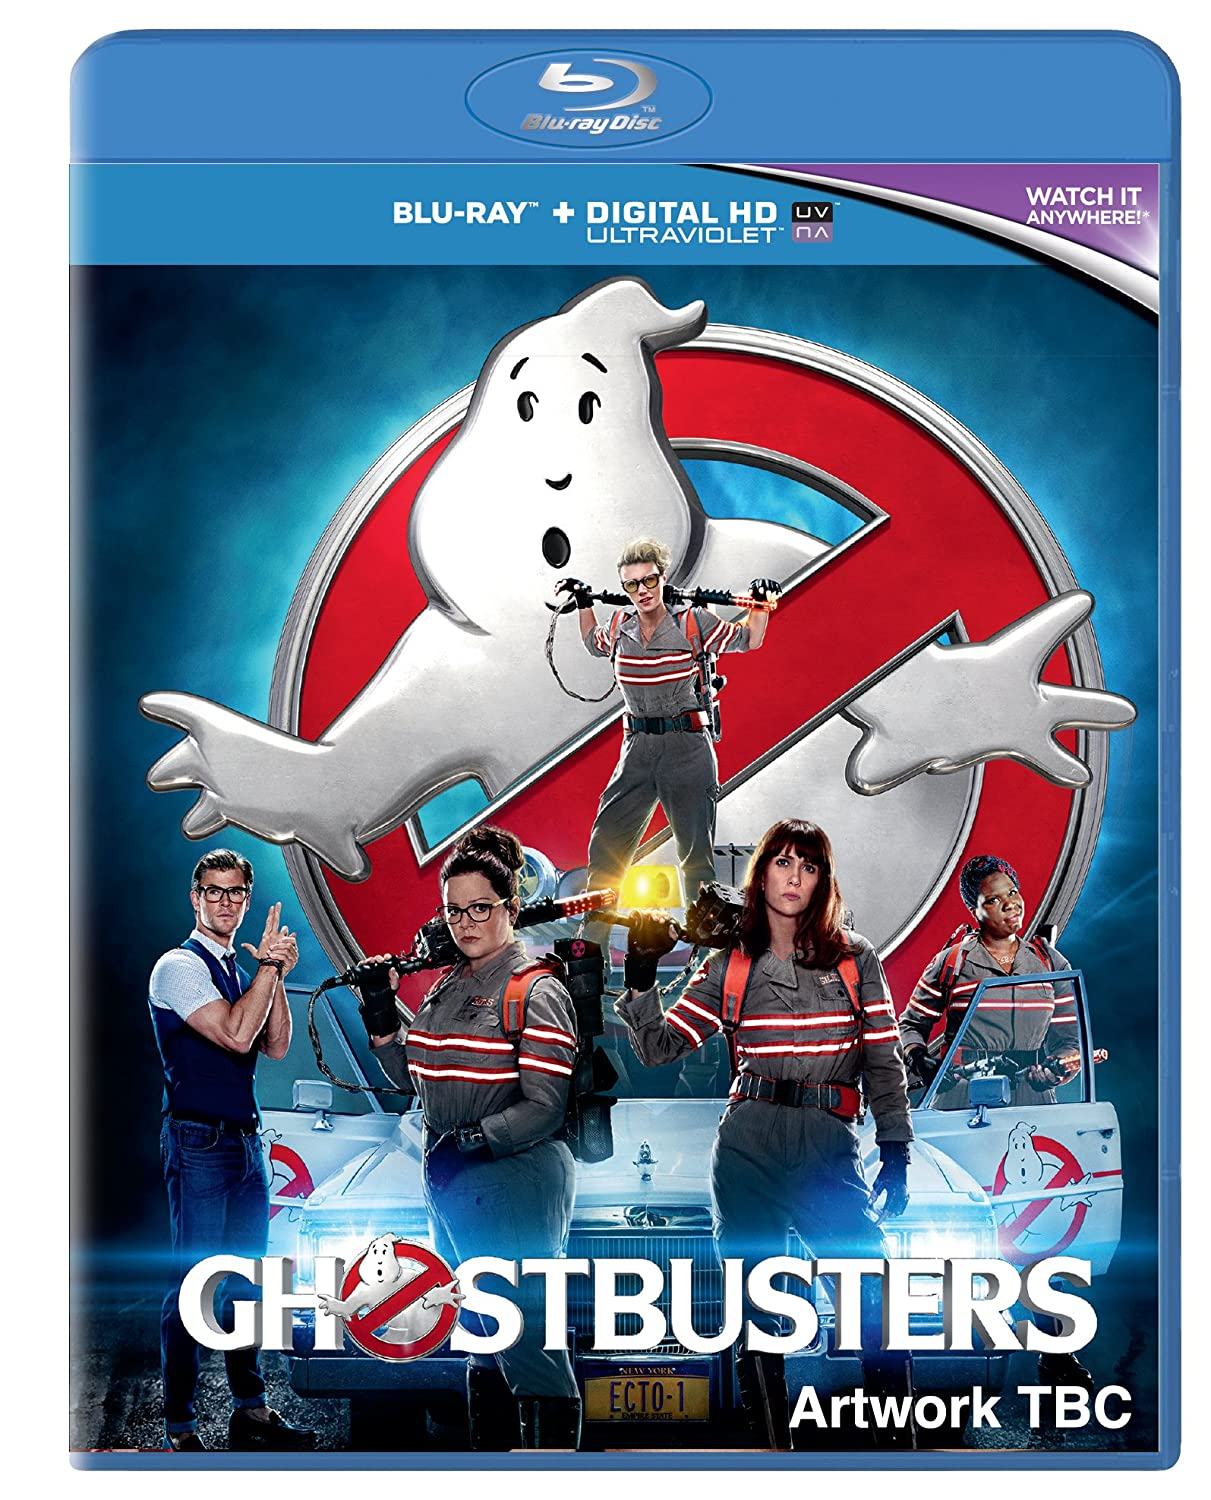 Ghostbusters 2016 Full Movie Download